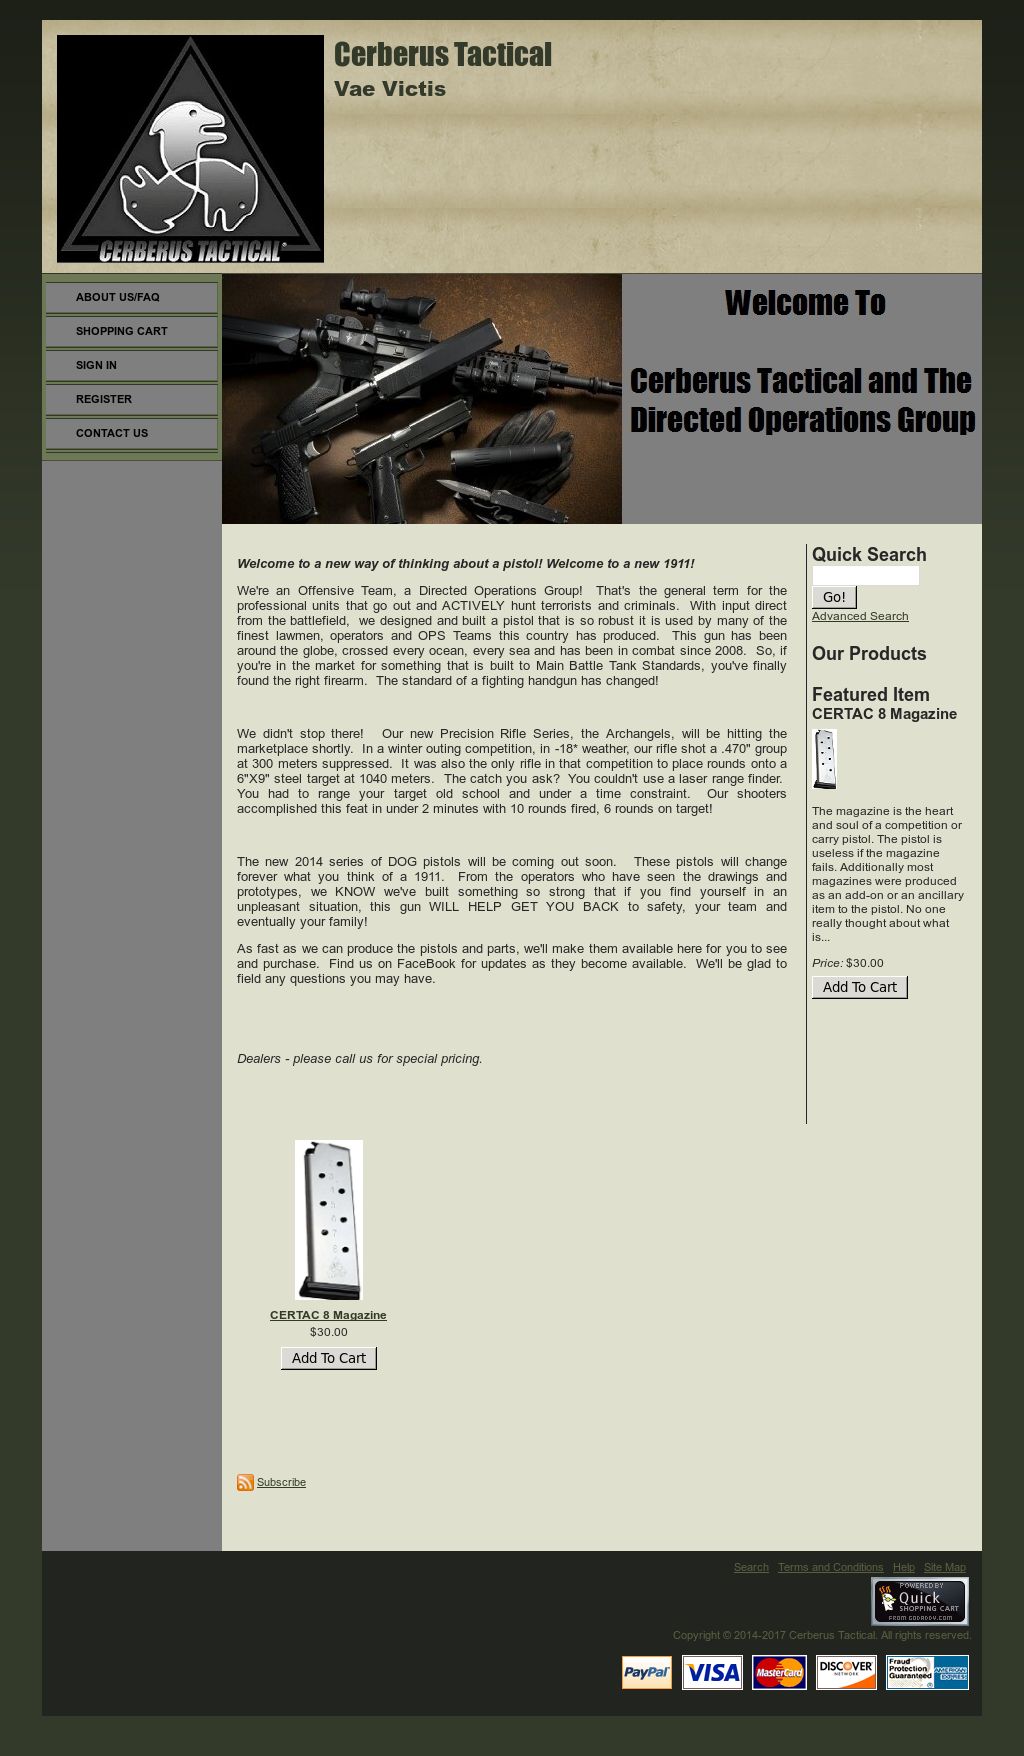 Cerberus Tactical Competitors, Revenue and Employees - Owler